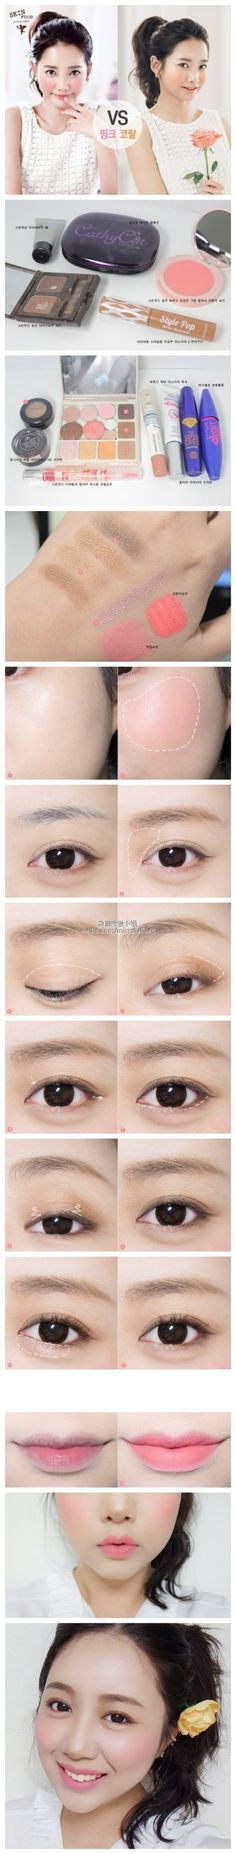 Korean make up http://nerium.kr/preenroll/debbiekrug?alias=debbiekrug www.AsianSkincare.Rocks